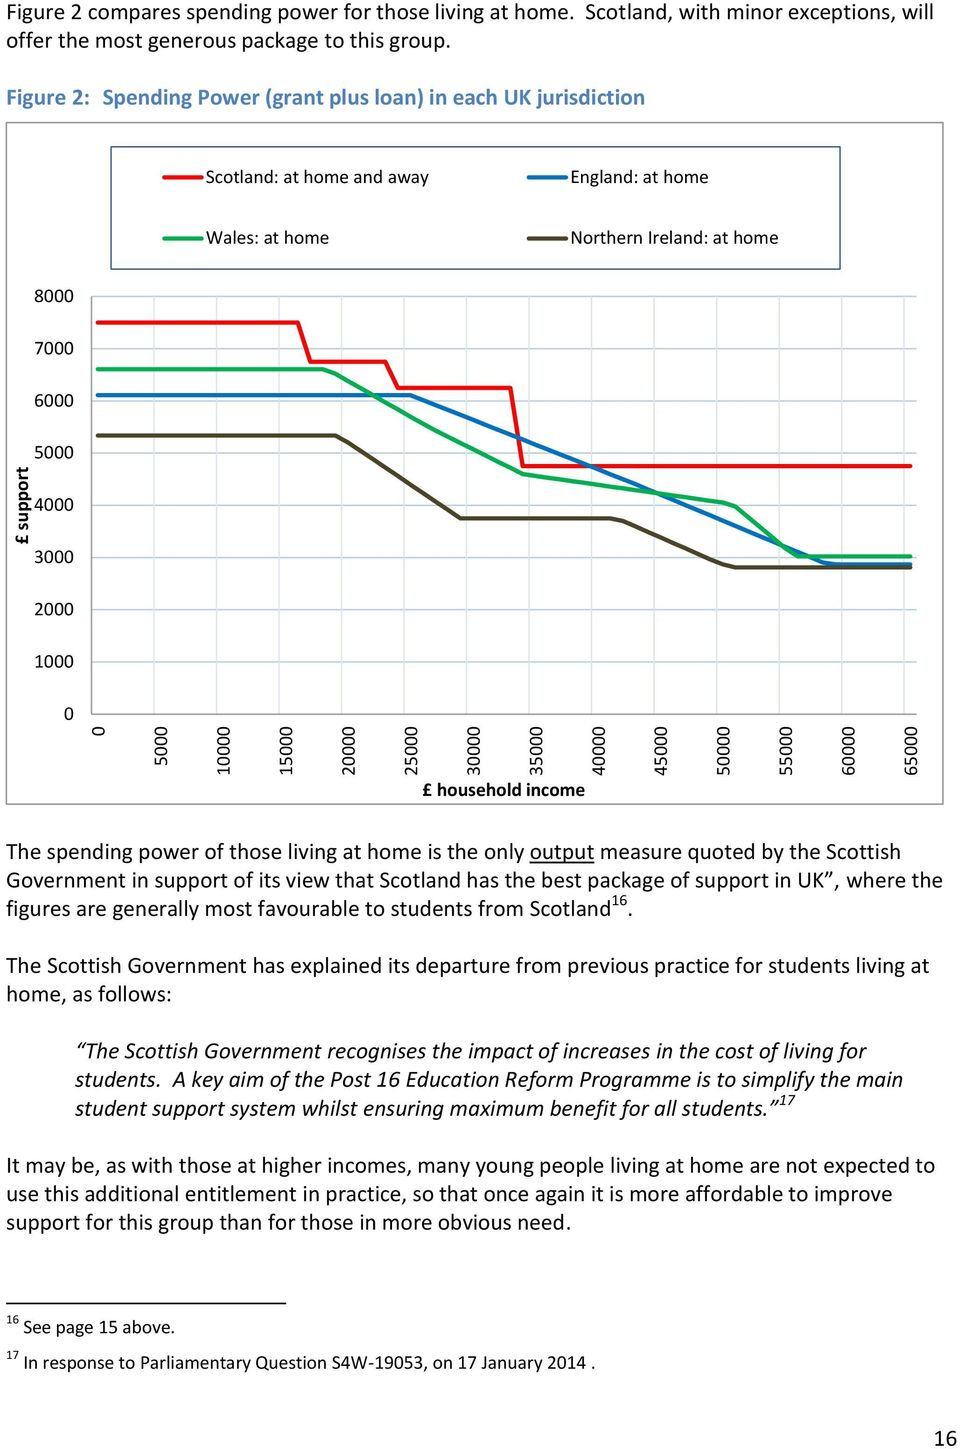 power of those living at home is the only output measure quoted by the Scottish Government in support of its view that Scotland has the best package of support in UK, where the figures are generally